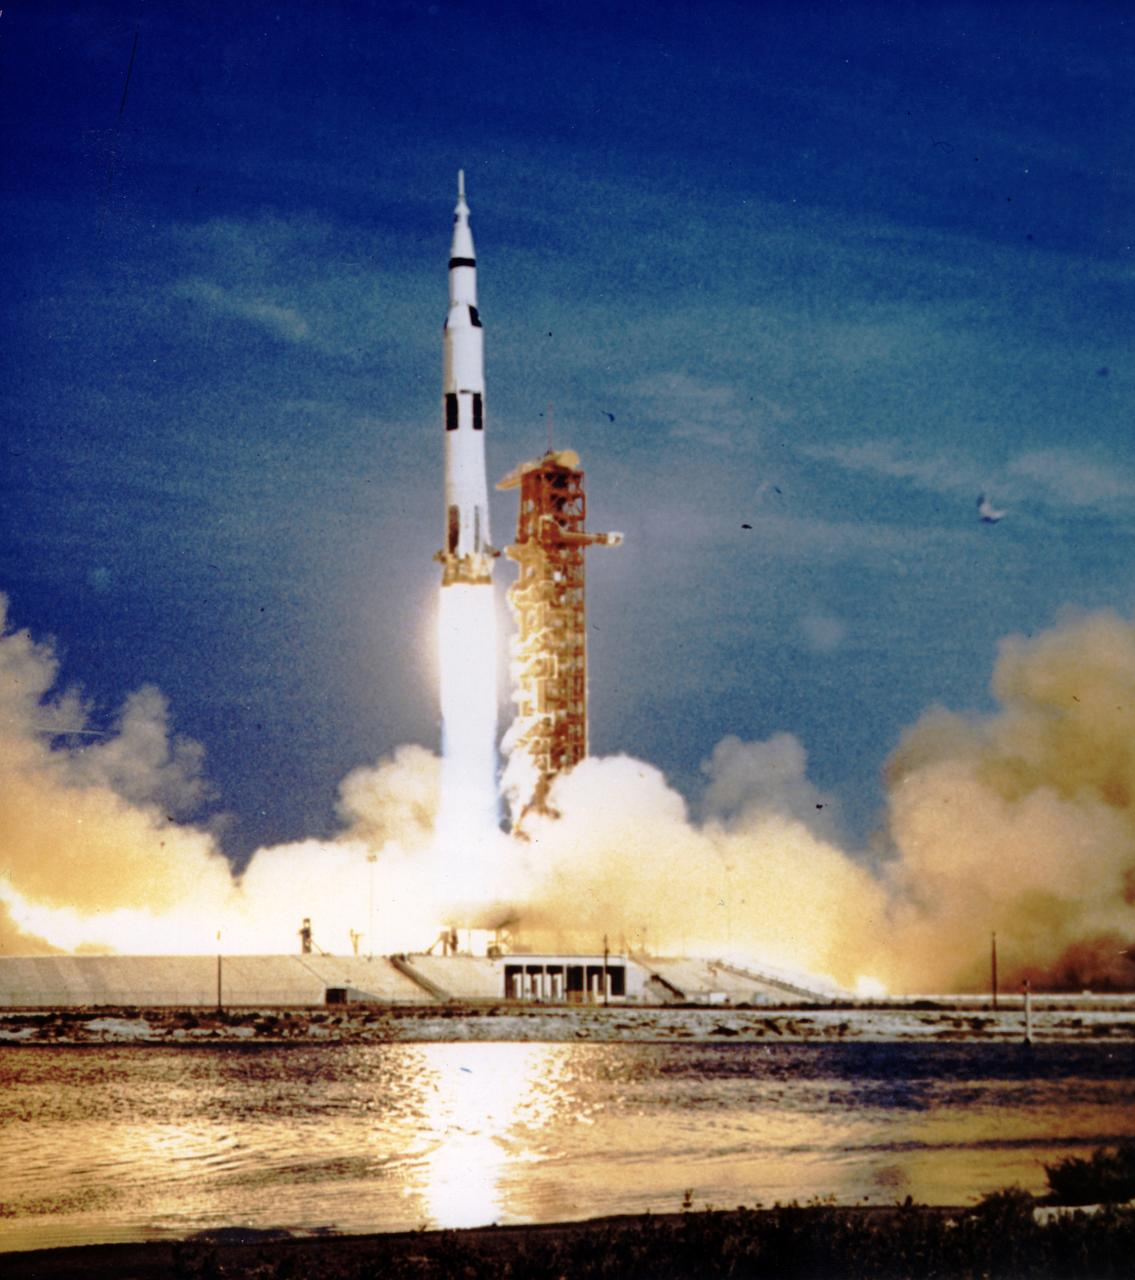 The Apollo 11 mission, the first manned lunar mission, launched from the Kennedy Space Center, Florida via the Marshall Space Flight Center (MSFC) developed Saturn V launch vehicle on July 16, 1969 and safely returned to Earth on July 24, 1969. The Saturn V vehicle produced a holocaust of flames as it rose from its pad at Launch complex 39. The 363 foot tall, 6,400,000 pound rocket hurled the spacecraft into Earth parking orbit and then placed it on the trajectory to the moon for man's first lunar landing. Aboard the space craft were astronauts Neil A. Armstrong, commander; Michael Collins, Command Module pilot; and Edwin E. Aldrin Jr., Lunar Module pilot. With the success of Apollo 11, the national objective to land men on the Moon and return them safely to Earth had been accomplished.